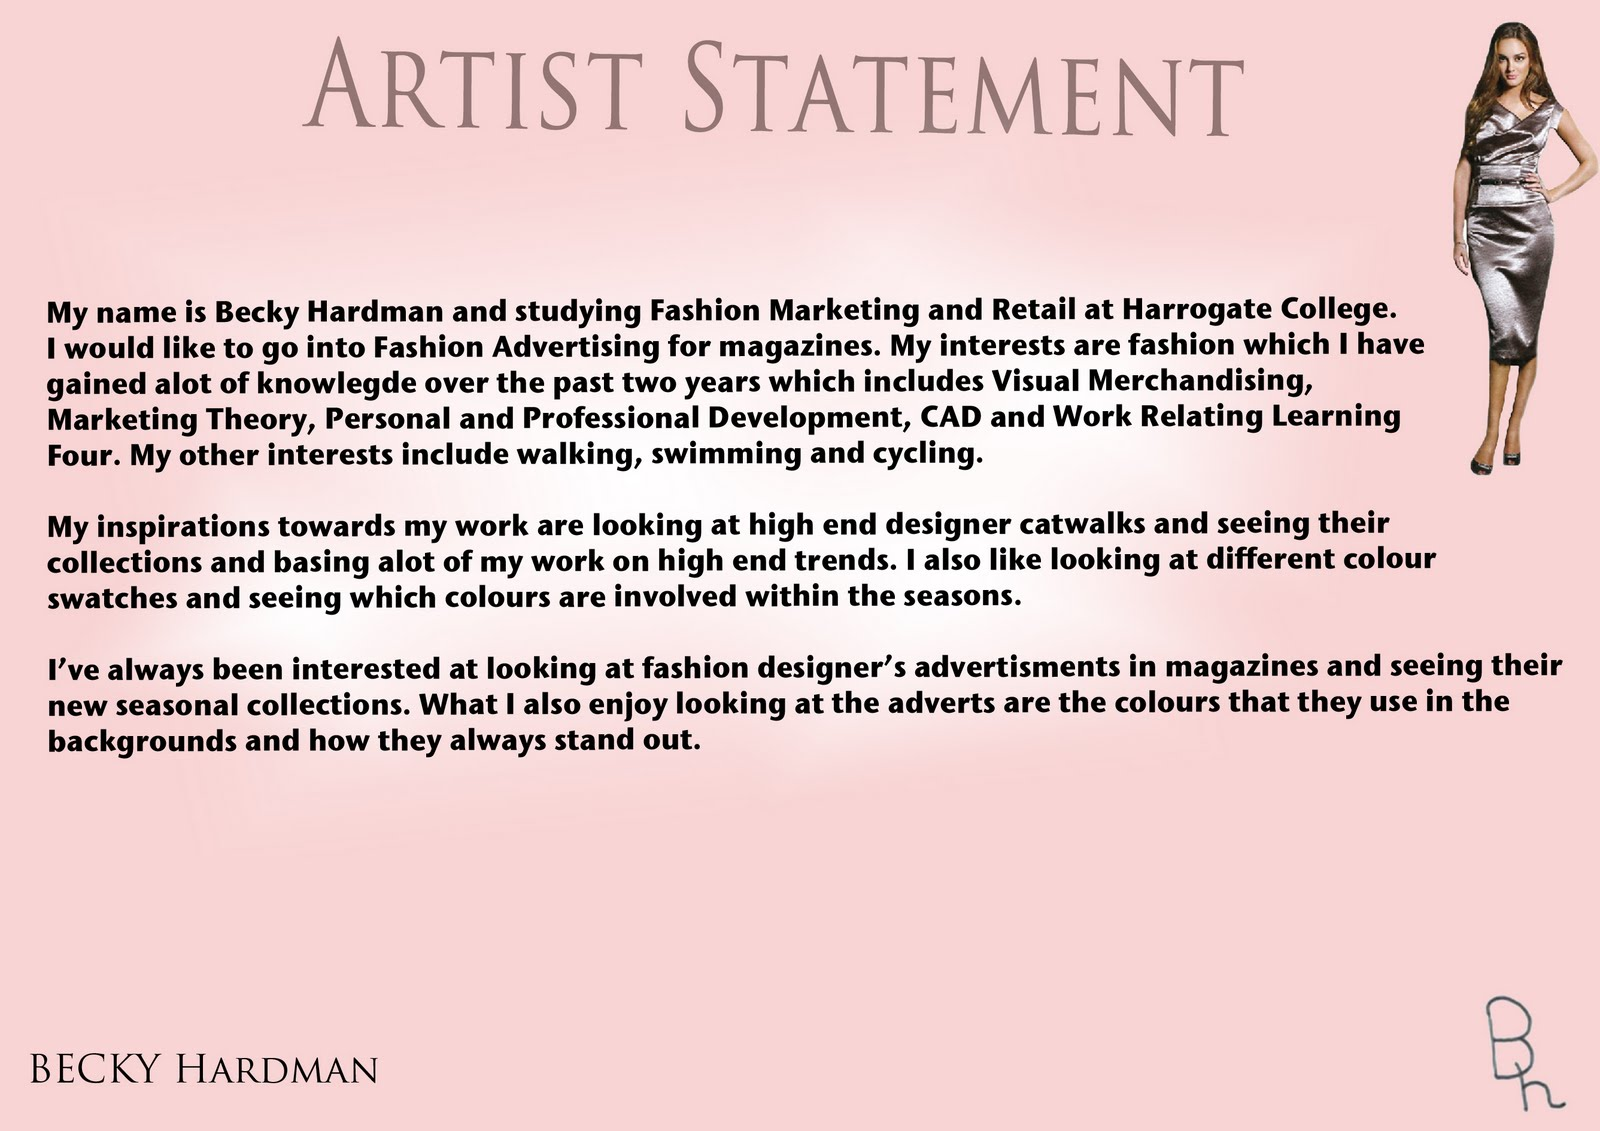 Mission Statements for Artists